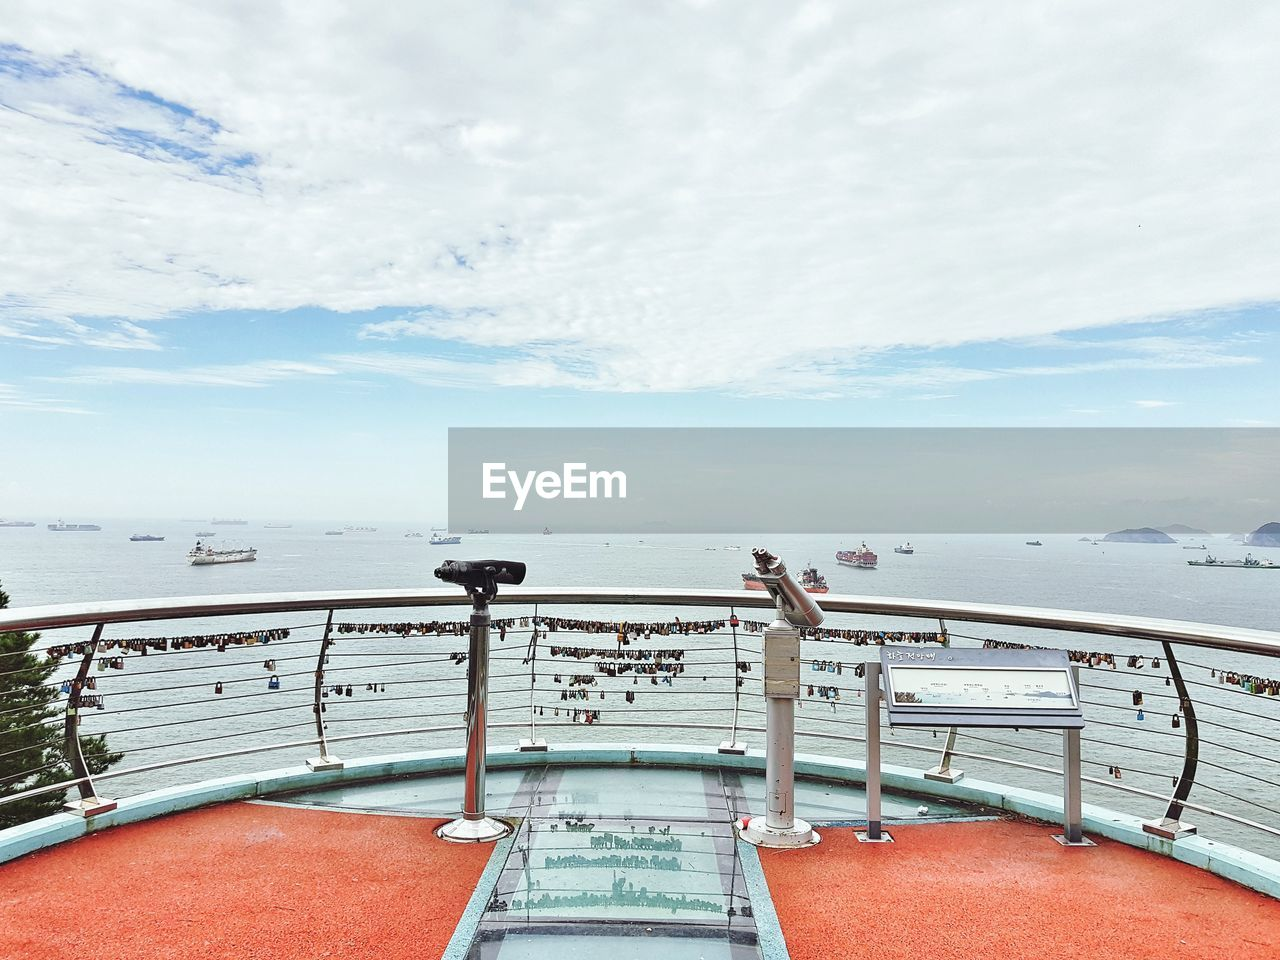 sky, water, cloud - sky, sea, railing, nautical vessel, day, nature, scenics - nature, ship, transportation, horizon over water, horizon, beauty in nature, deck, boat deck, outdoors, mode of transportation, architecture, cruise ship